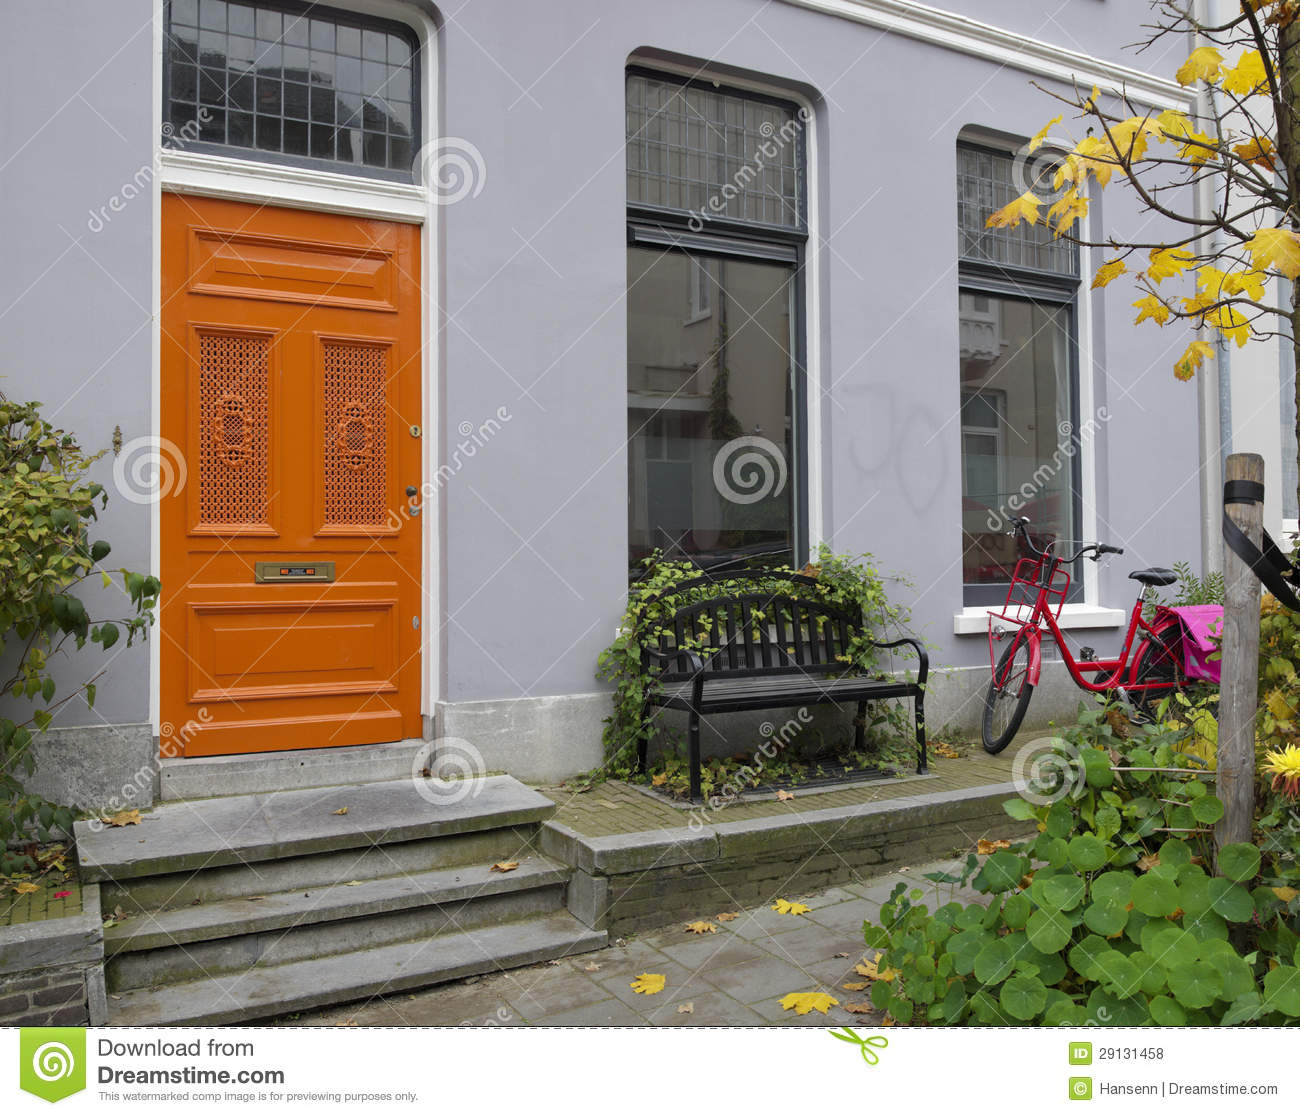 Orange Door Stock Photo Image Of Handle Entrance Street 29131458